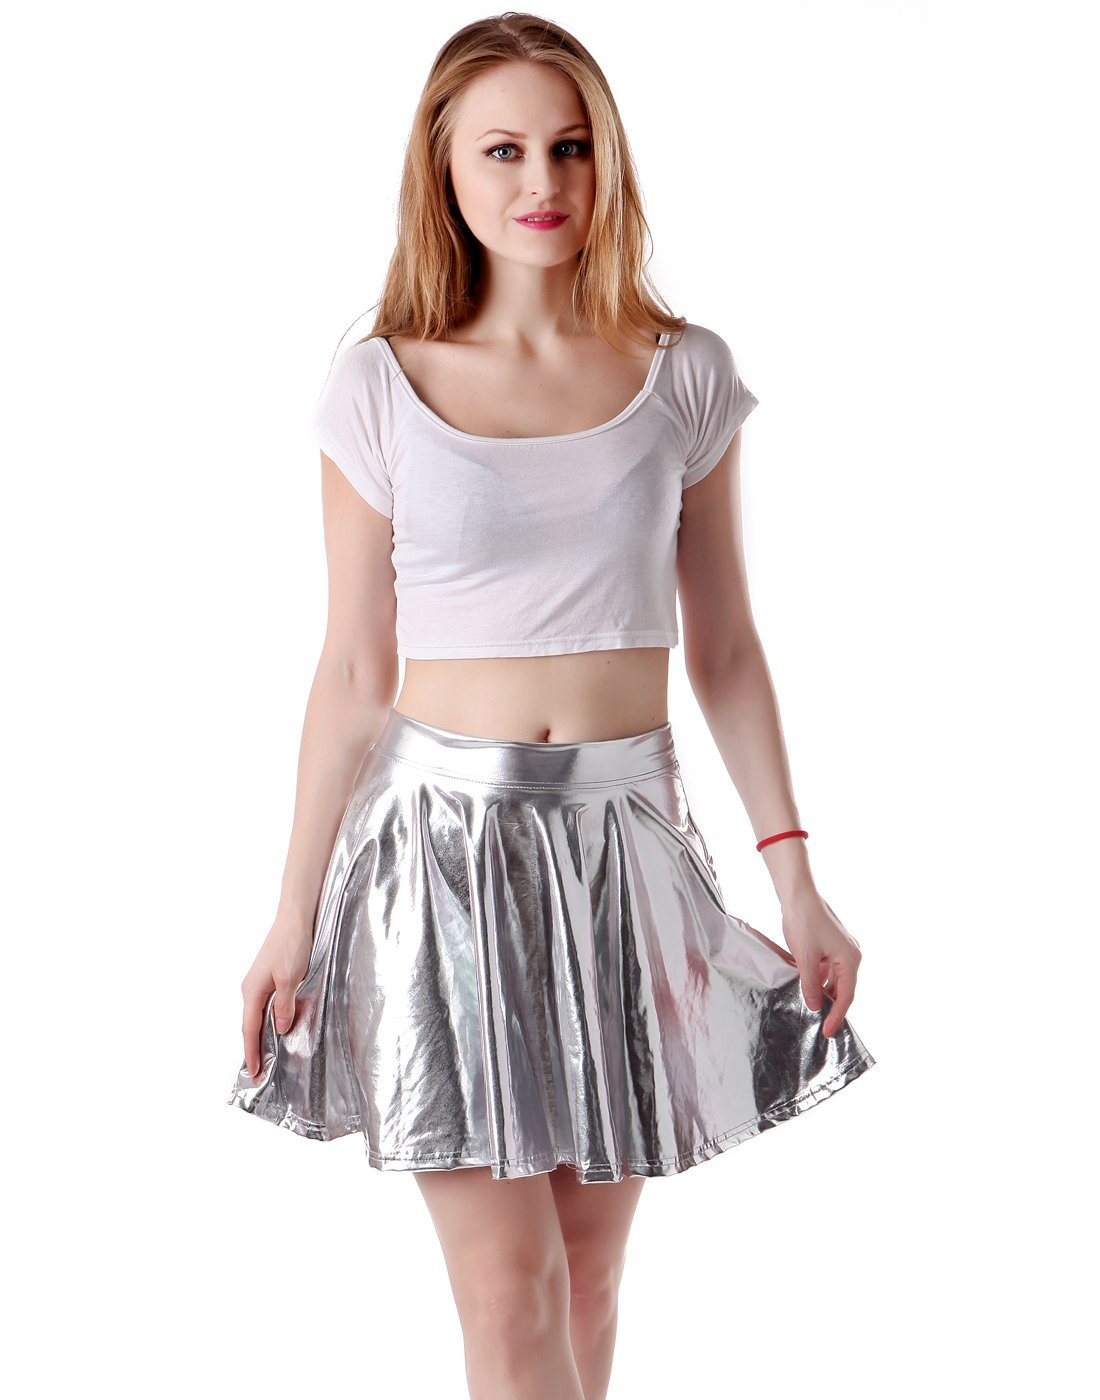 Women's Casual Fashion Flared Pleated A-Line Circle Skater Skirt (Silver, XL)